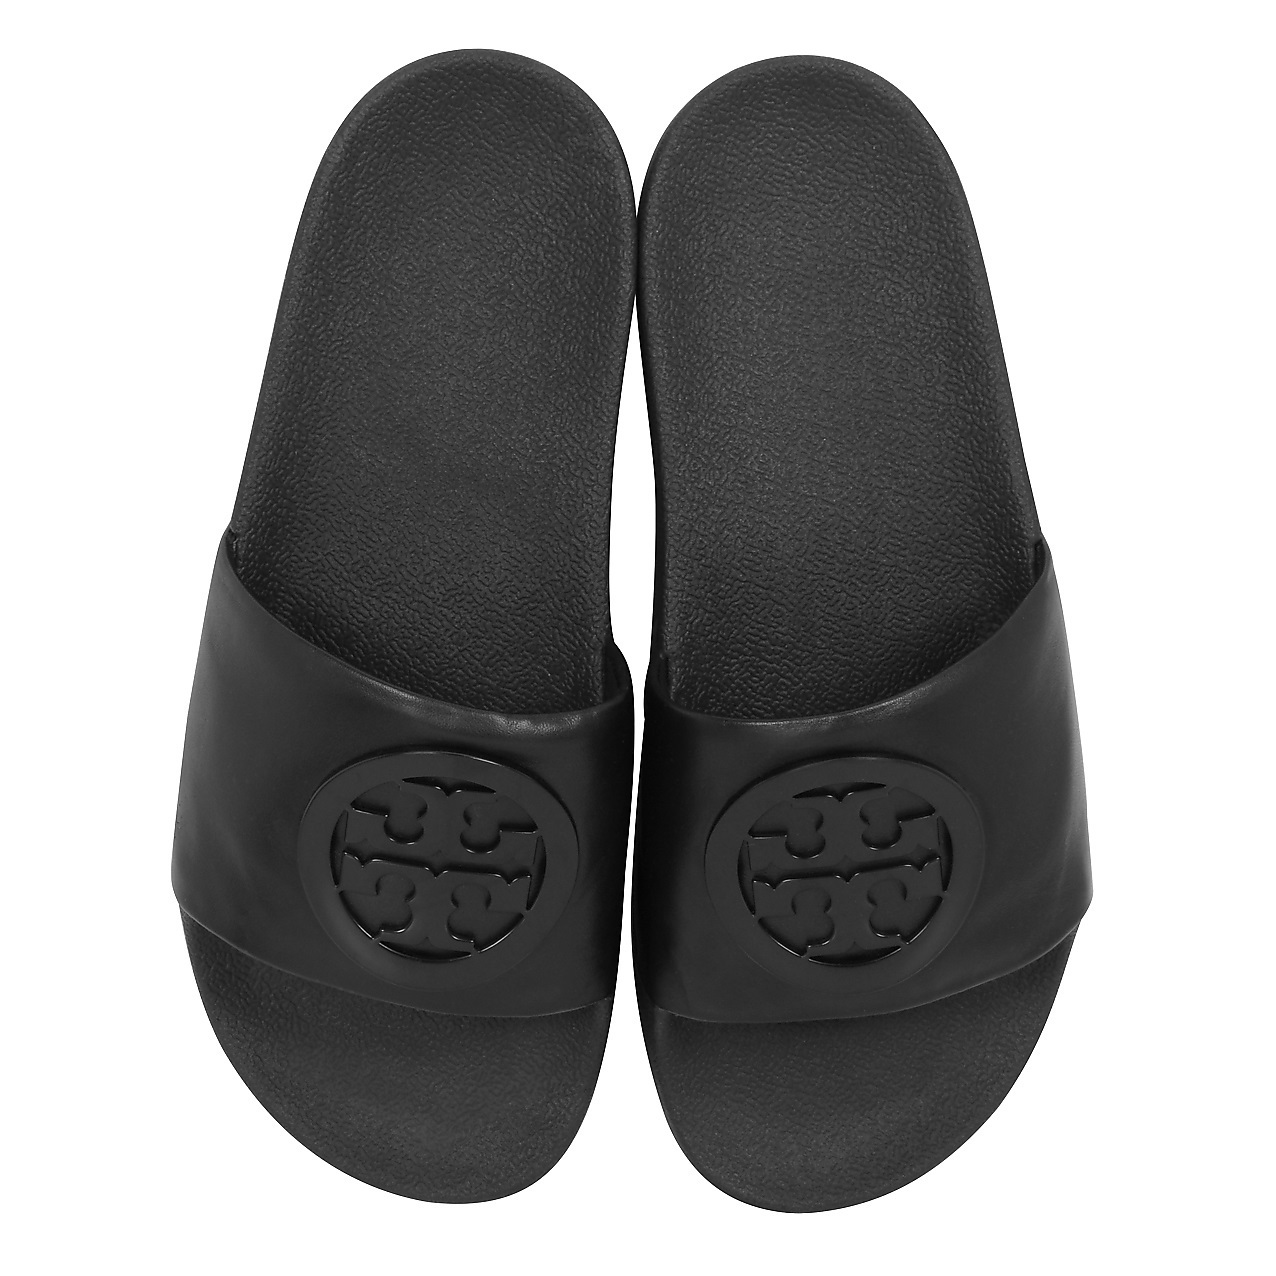 ★Tory Burch★ Black Leather Lina Slide サンダル 関税込